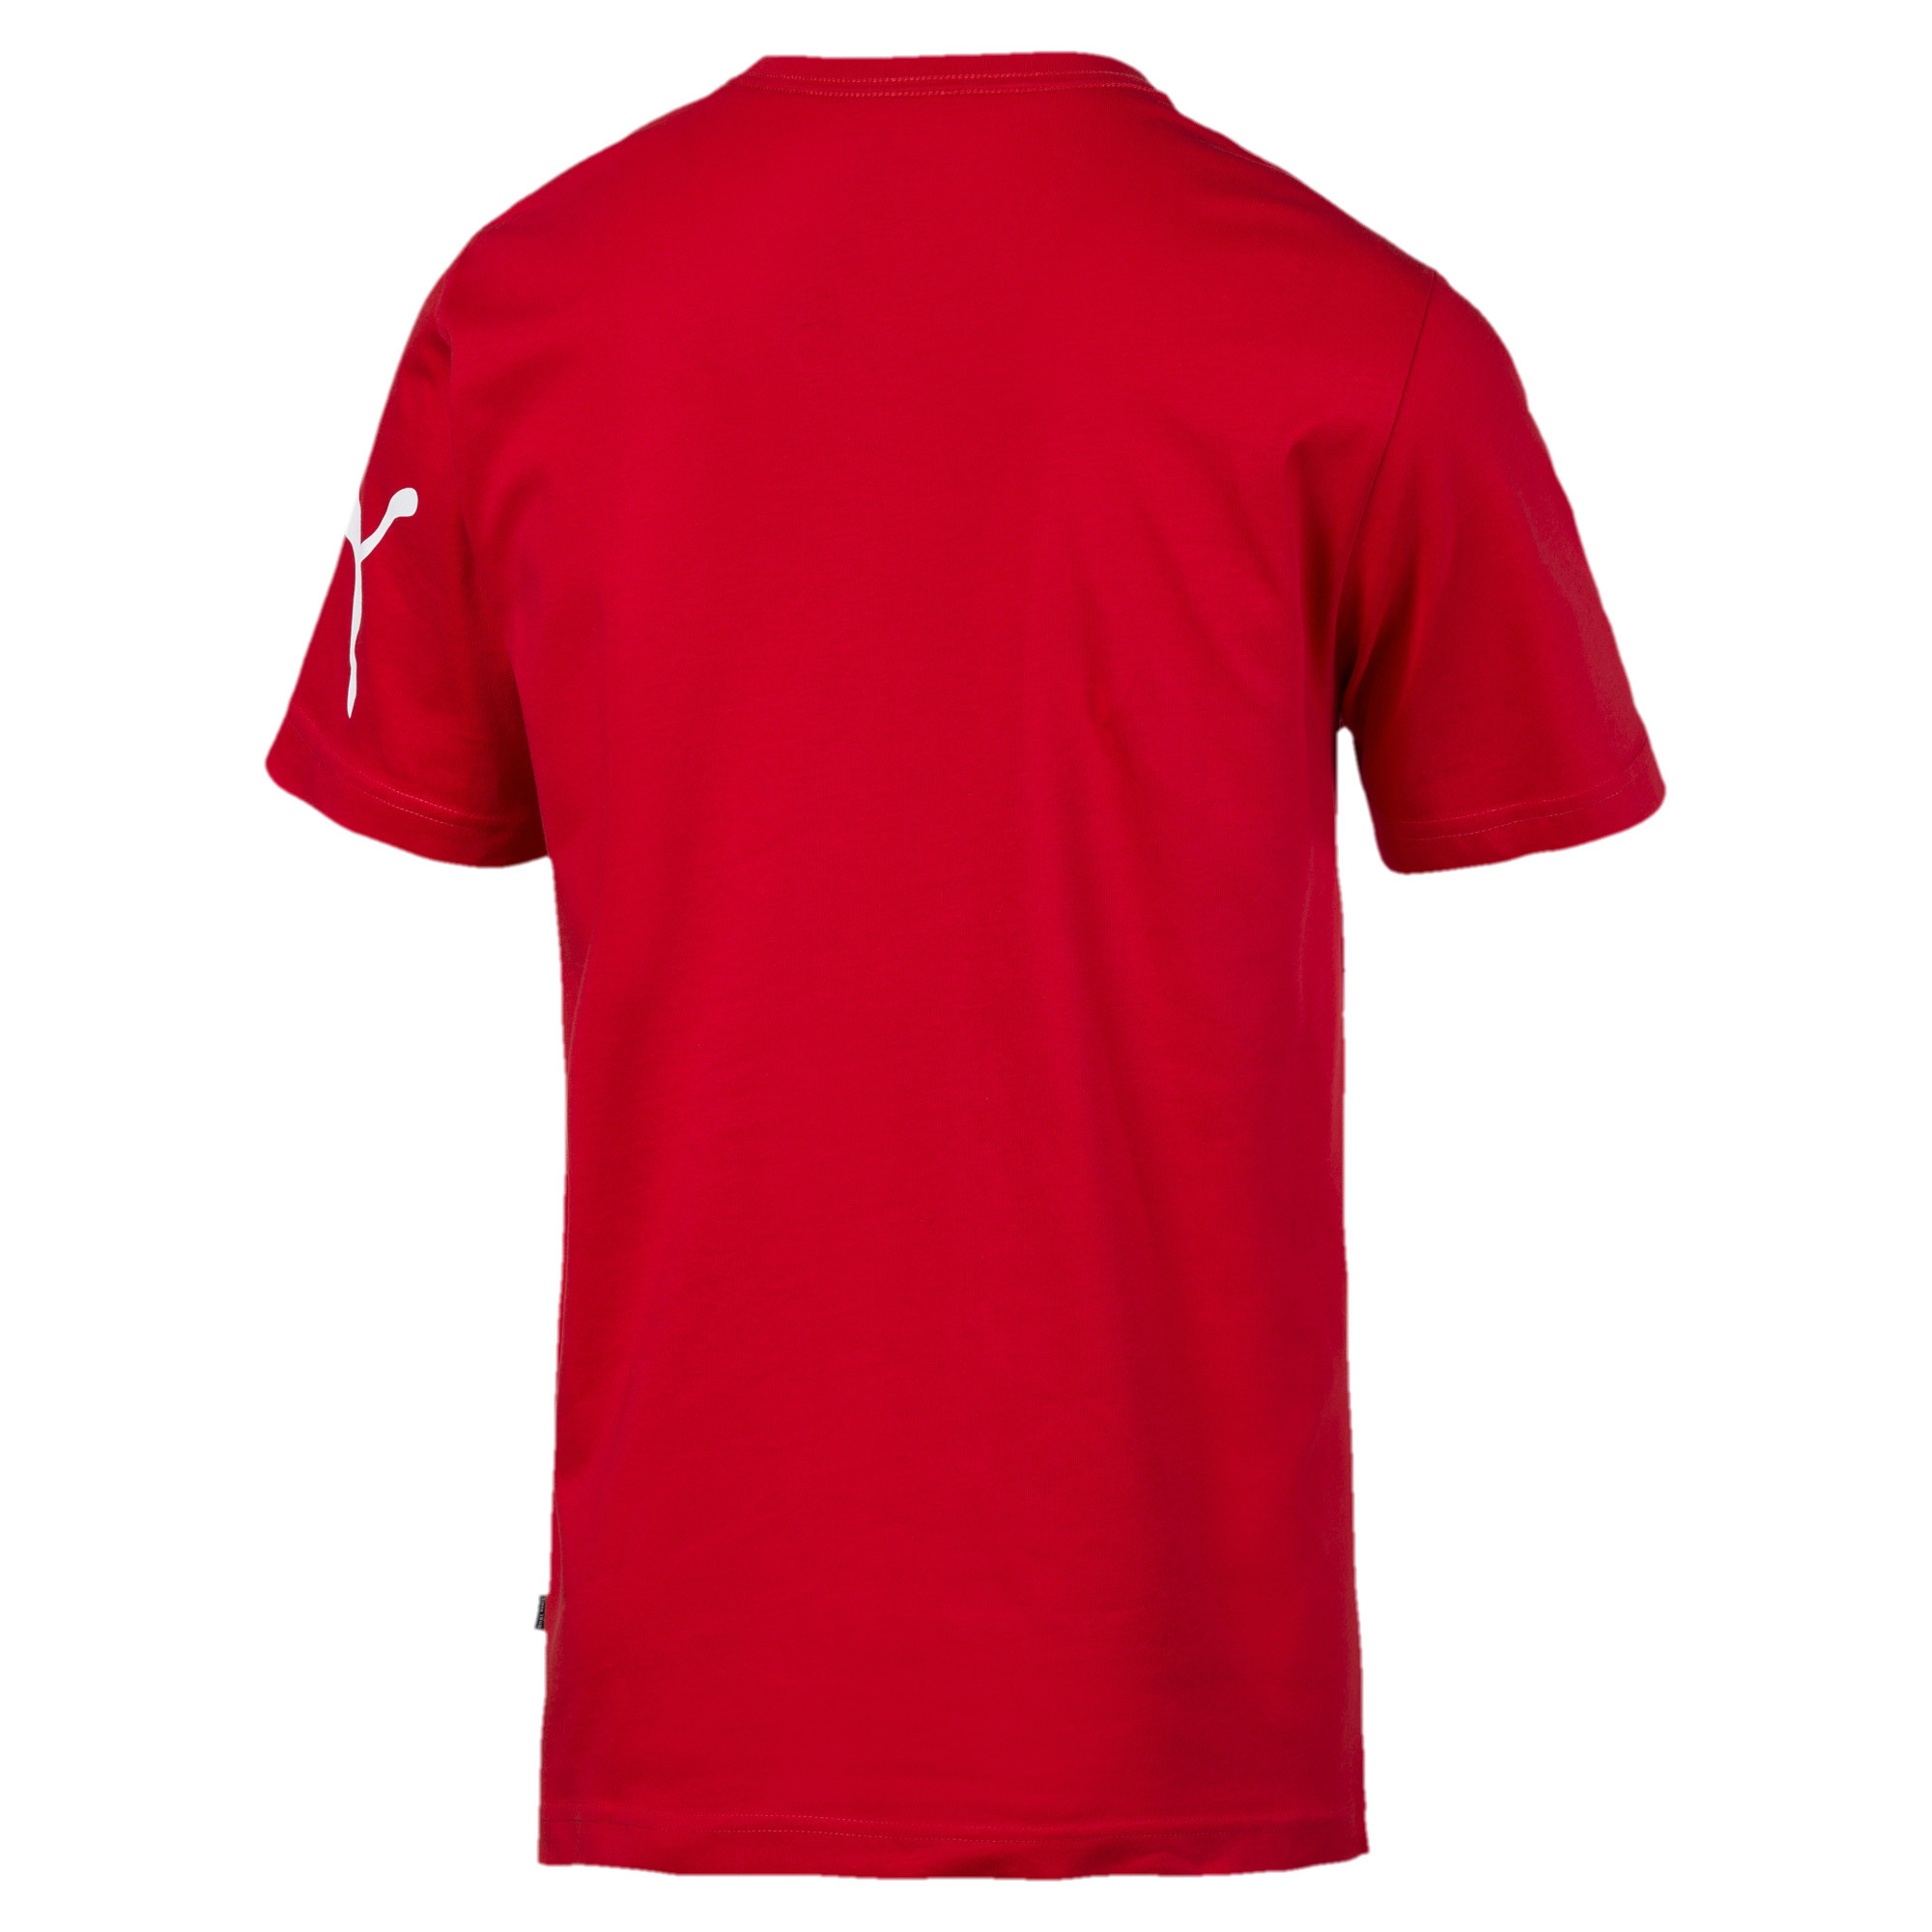 PUMA-Big-Logo-Men-039-s-Tee-Men-Tee-Basics thumbnail 20